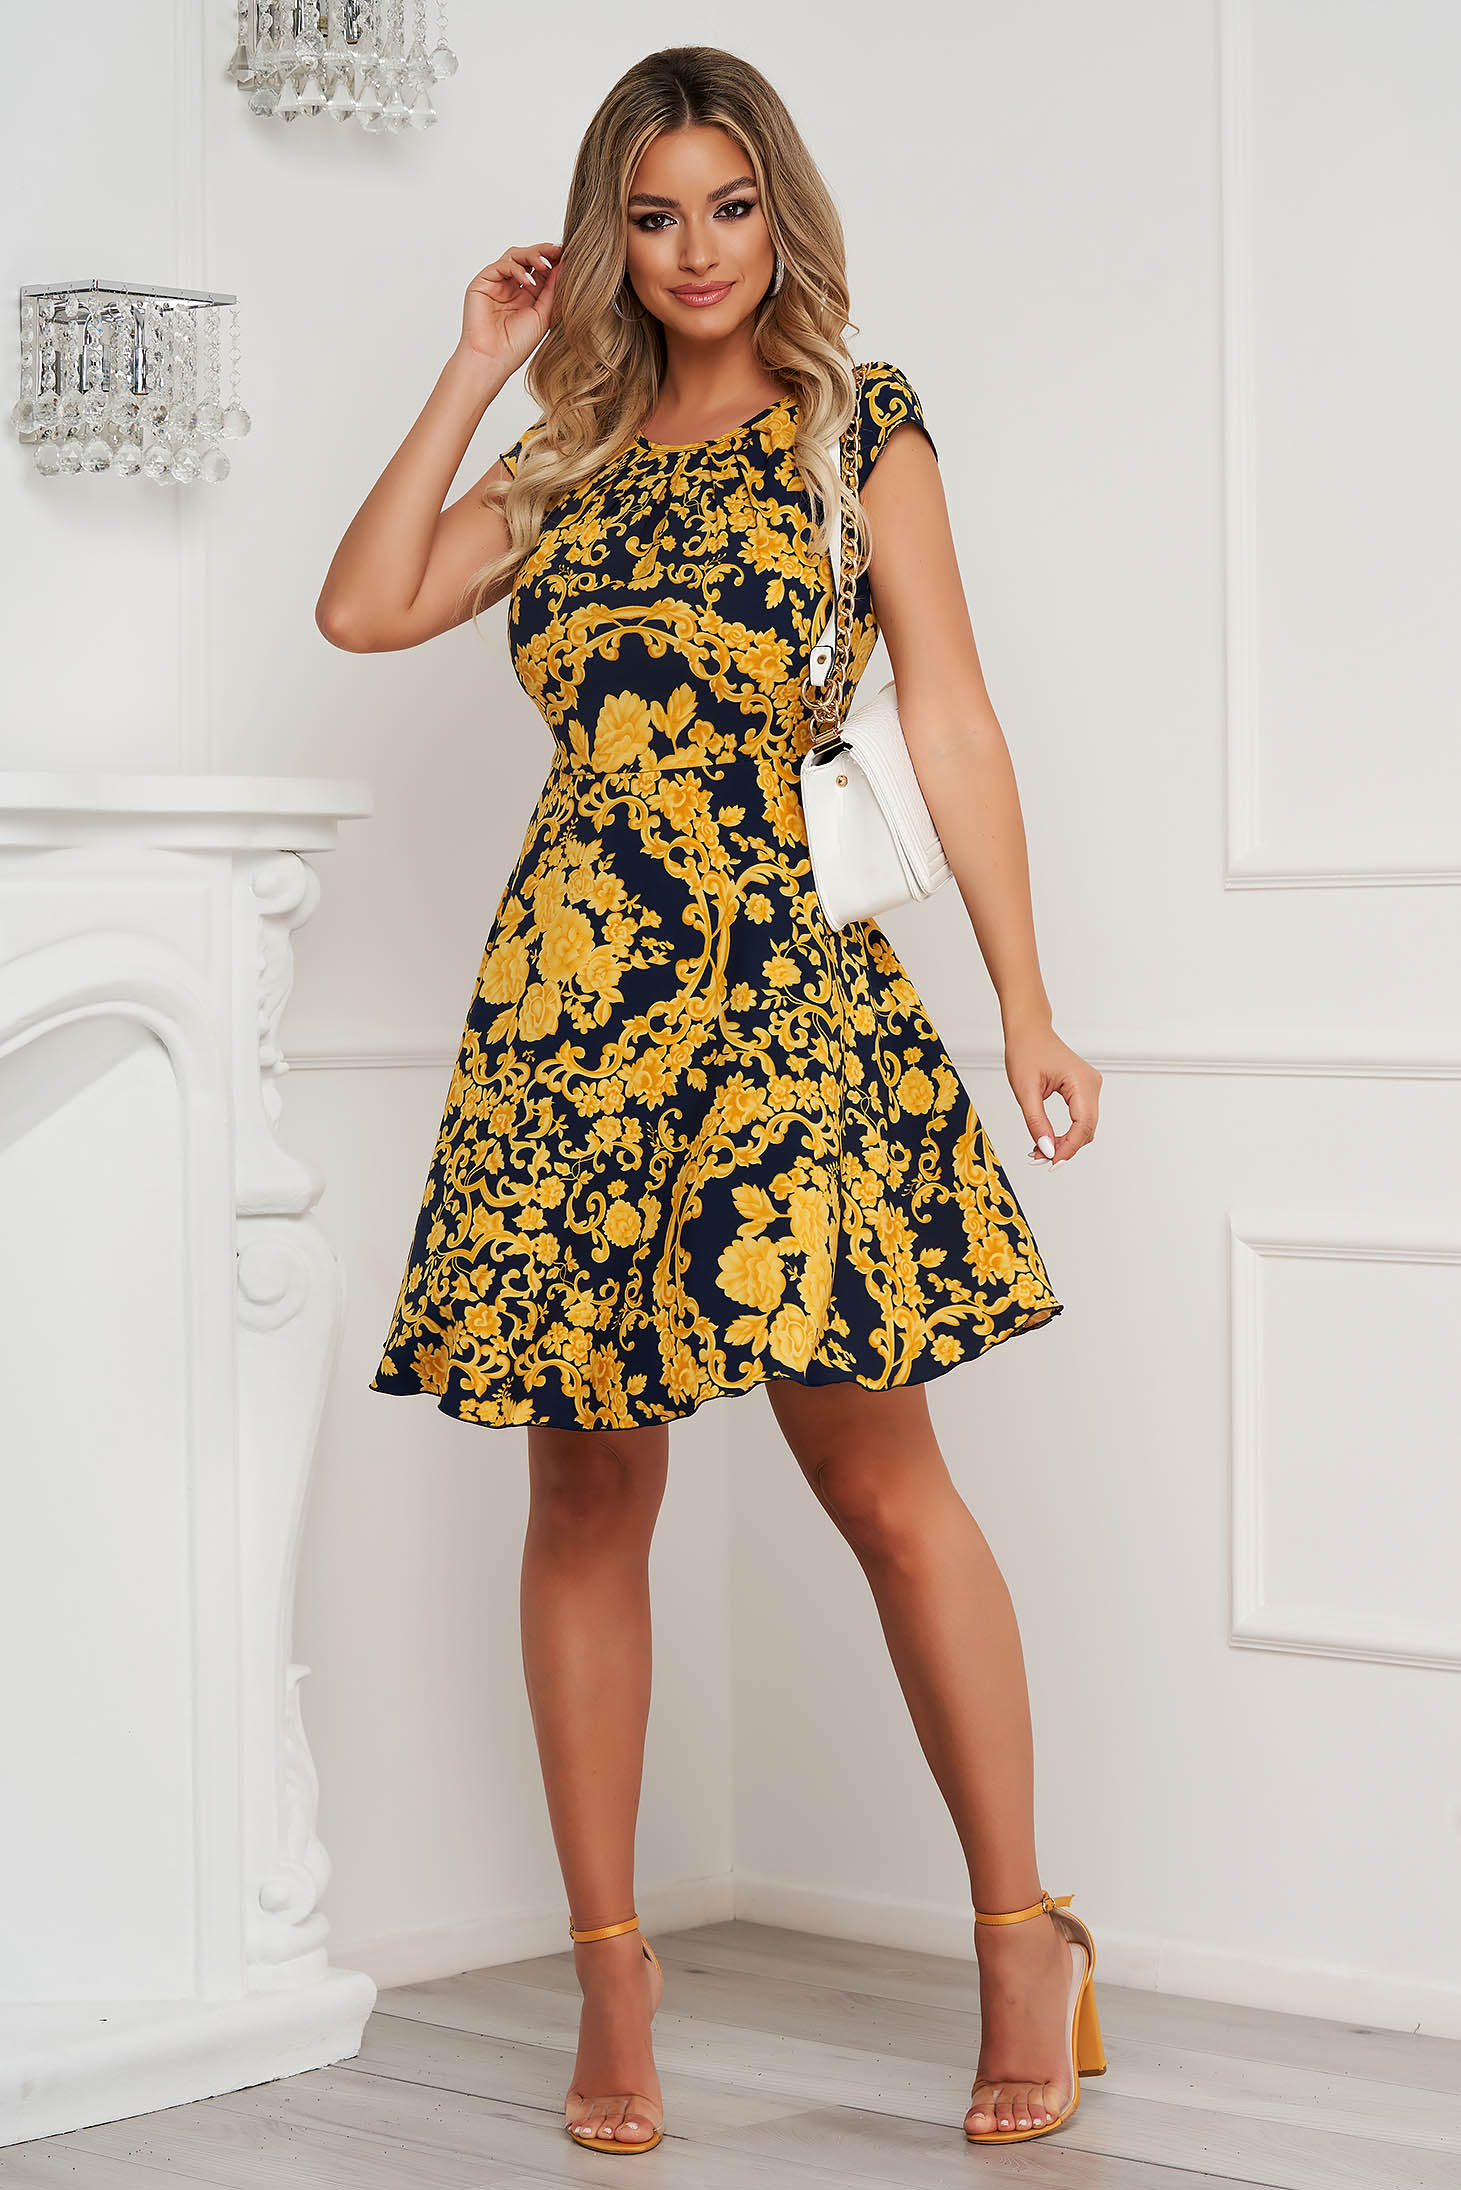 Dress cloche short cut thin fabric short sleeves with floral print office